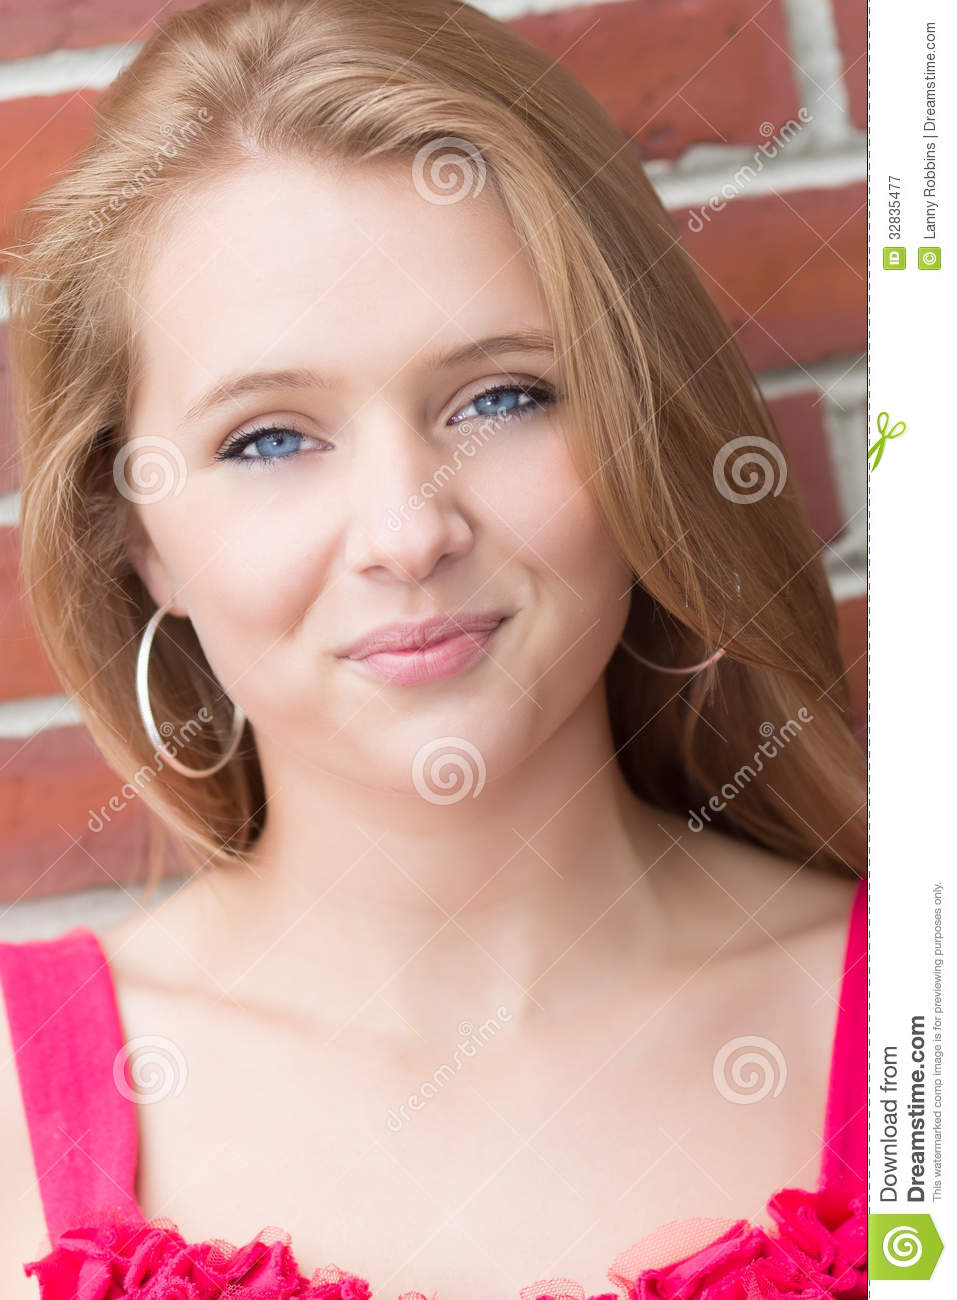 Smiled Teenage girl with blonde hair complicité épouse